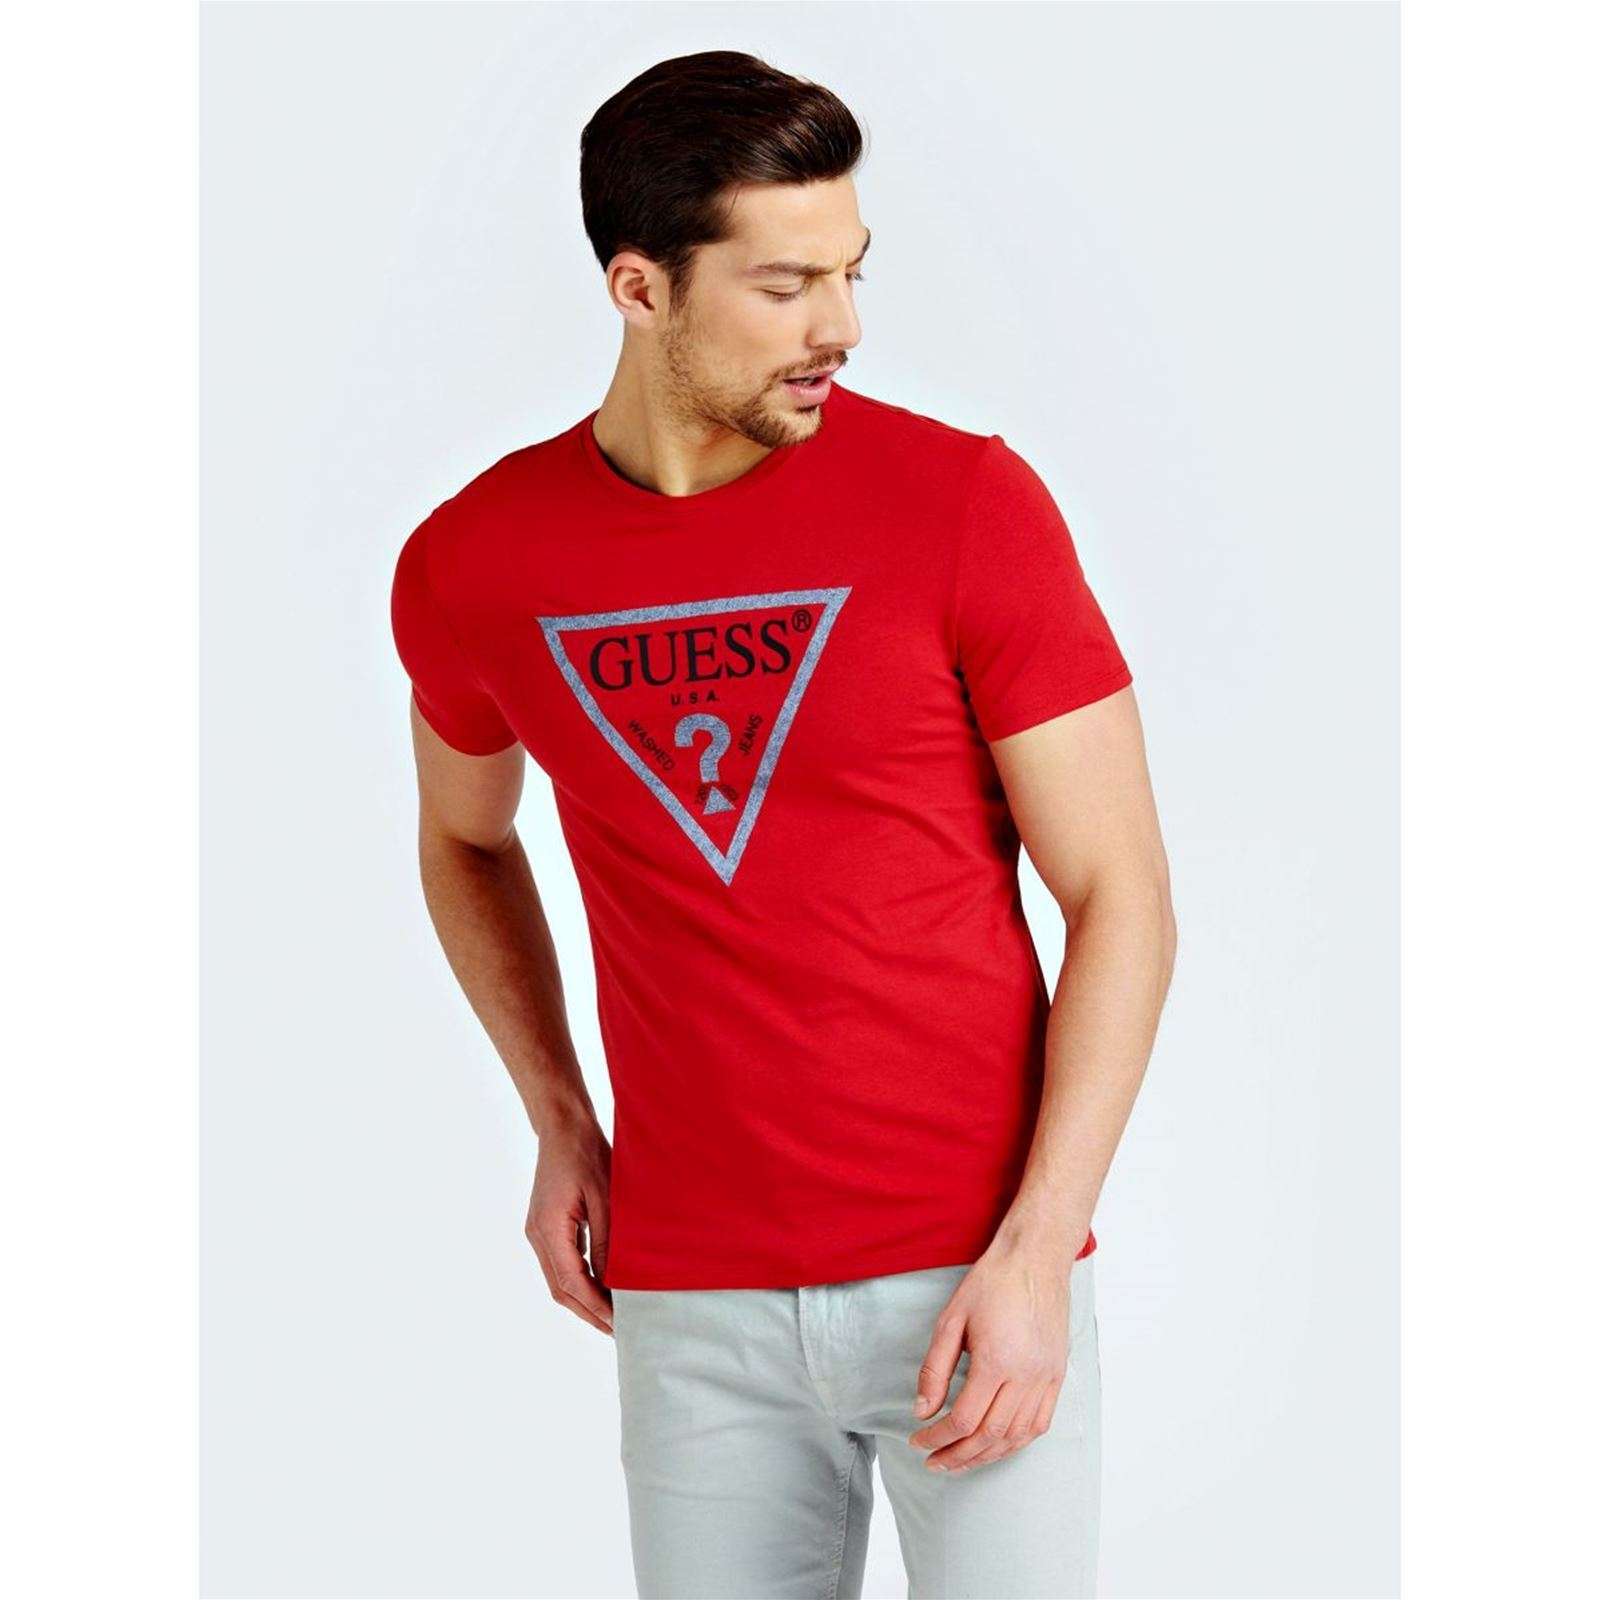 CourtesRouge T Guess shirt V Manches Homme 0wOmvN8n